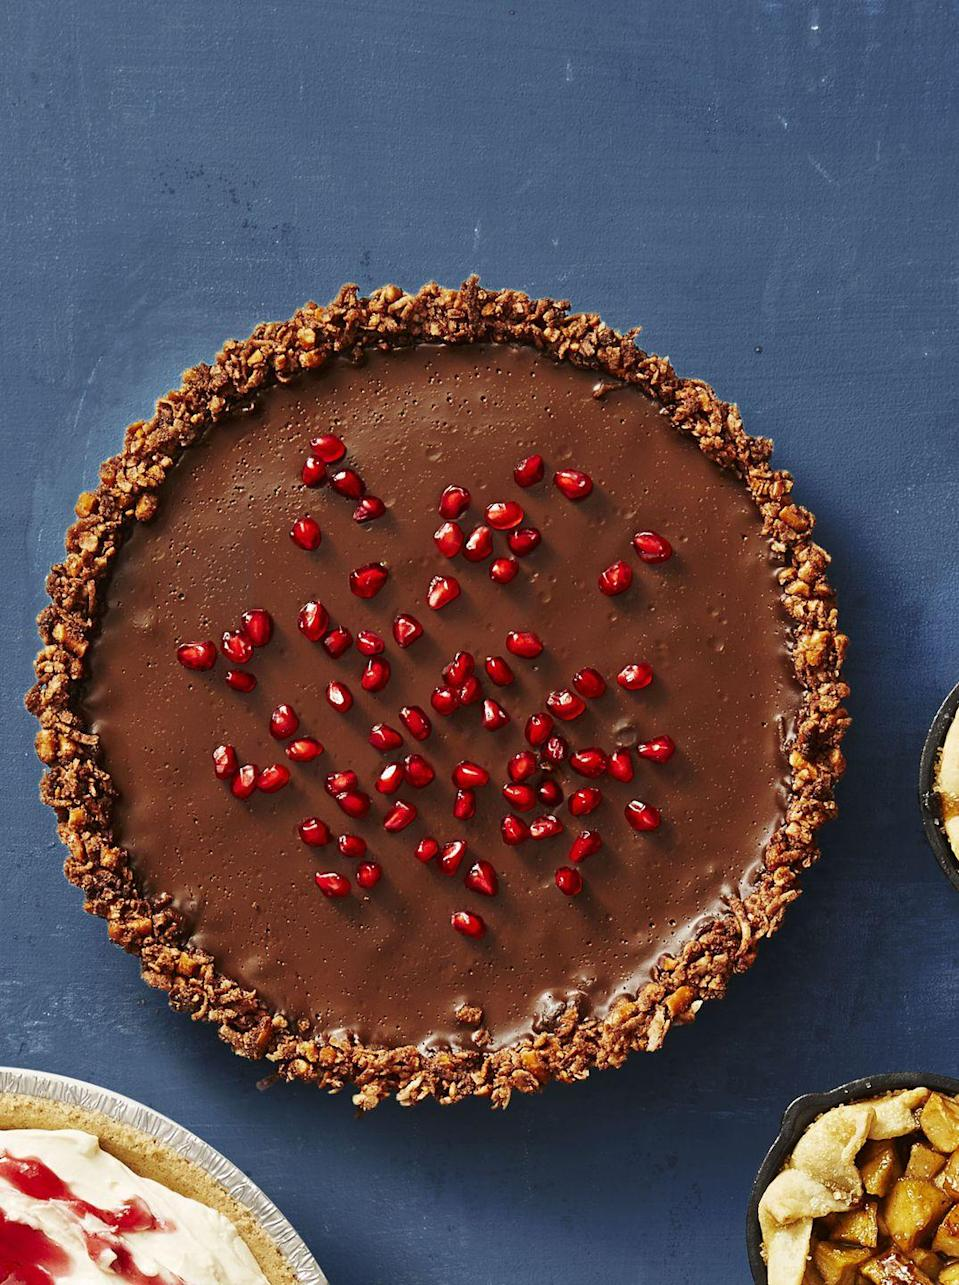 "<p>Finally a dessert that can suit every dietary restriction (gluten free, nut-free and vegan) and doesn't taste like cardboard. </p><p><em><a href=""https://www.goodhousekeeping.com/food-recipes/a41082/gluten-free-chocolate-ganache-tart-recipe/"" rel=""nofollow noopener"" target=""_blank"" data-ylk=""slk:Get the recipe for Gluten-Free Chocolate Ganache Tart »"" class=""link rapid-noclick-resp"">Get the recipe for Gluten-Free Chocolate Ganache Tart »</a></em></p><p><strong>RELATED: </strong><a href=""https://www.goodhousekeeping.com/holidays/thanksgiving-ideas/g22727716/vegan-thanksgiving-recipes/"" rel=""nofollow noopener"" target=""_blank"" data-ylk=""slk:22 Easy Vegan Thanksgiving Recipes You Need to Make"" class=""link rapid-noclick-resp"">22 Easy Vegan Thanksgiving Recipes You Need to Make</a></p>"